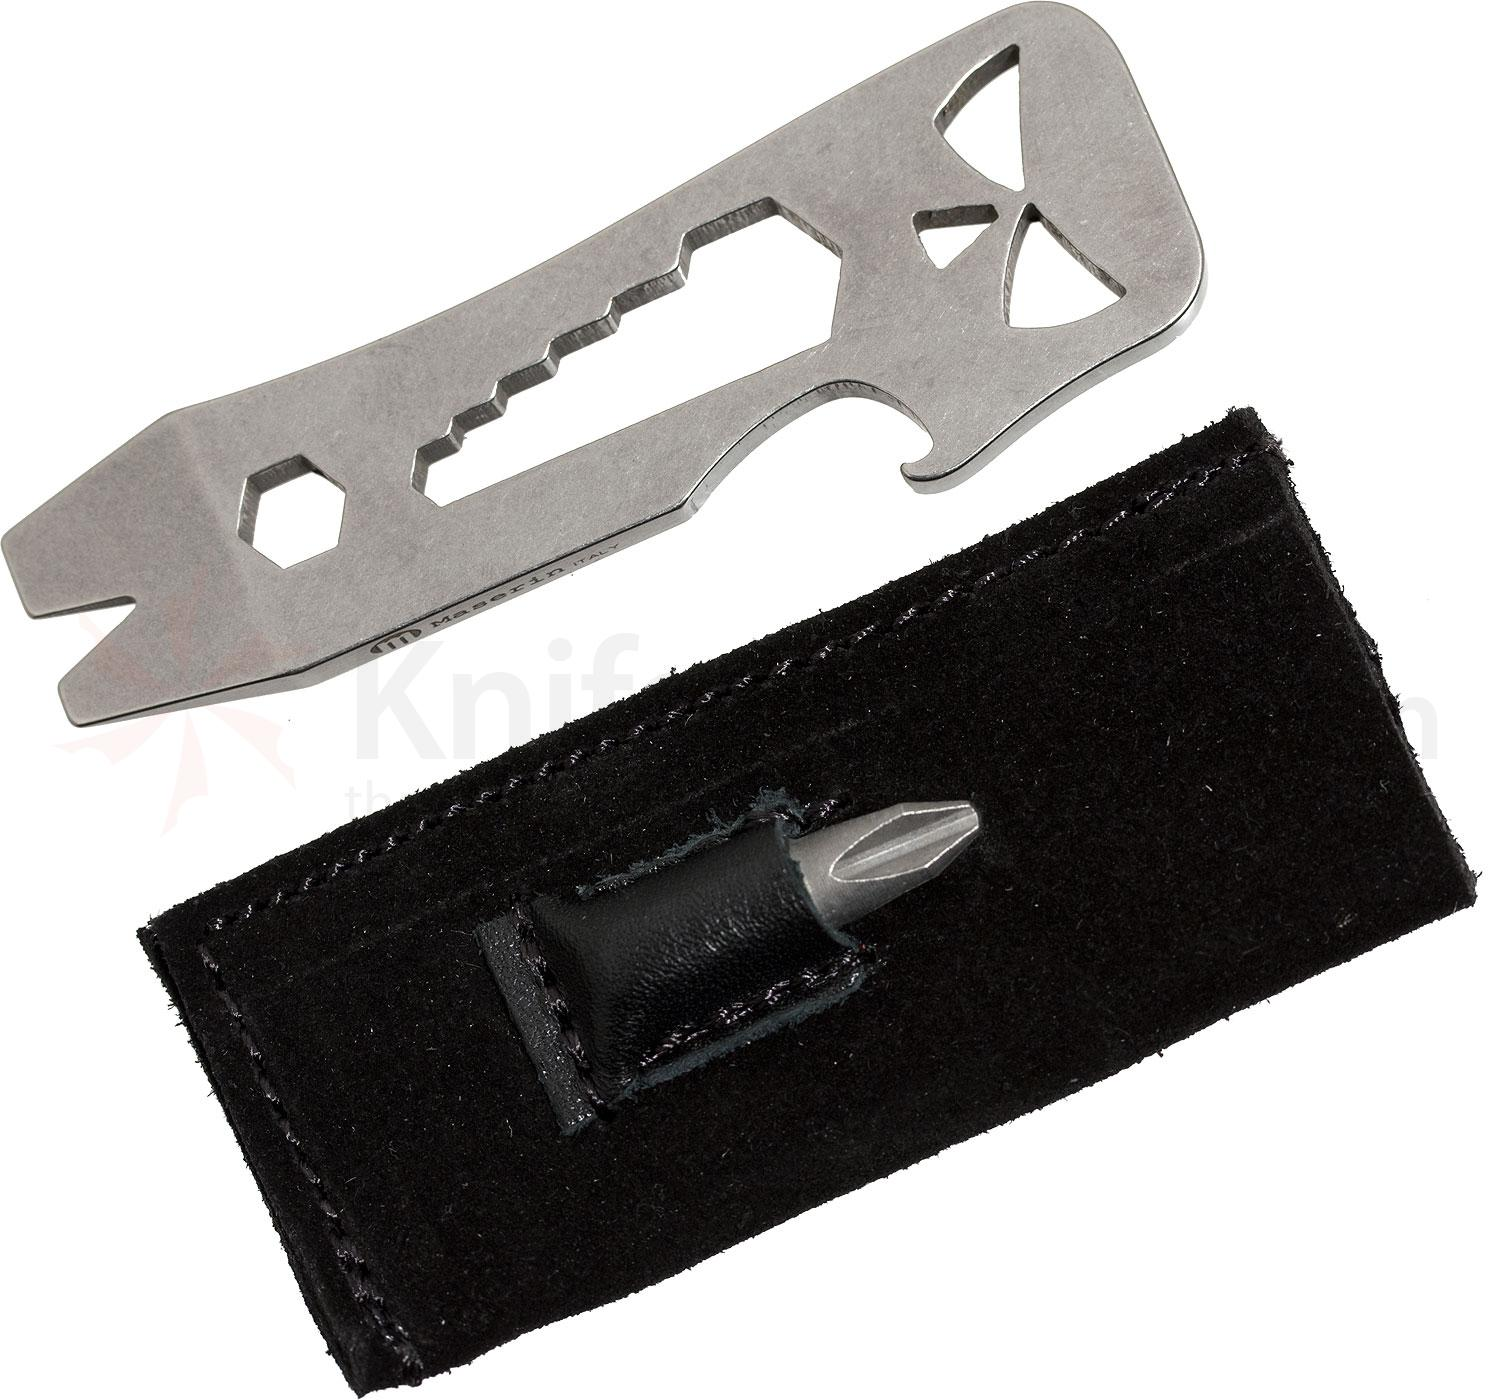 Maserin 905/BF Pocket Tool Ghost Multifunctional Pry Tool with Sheath